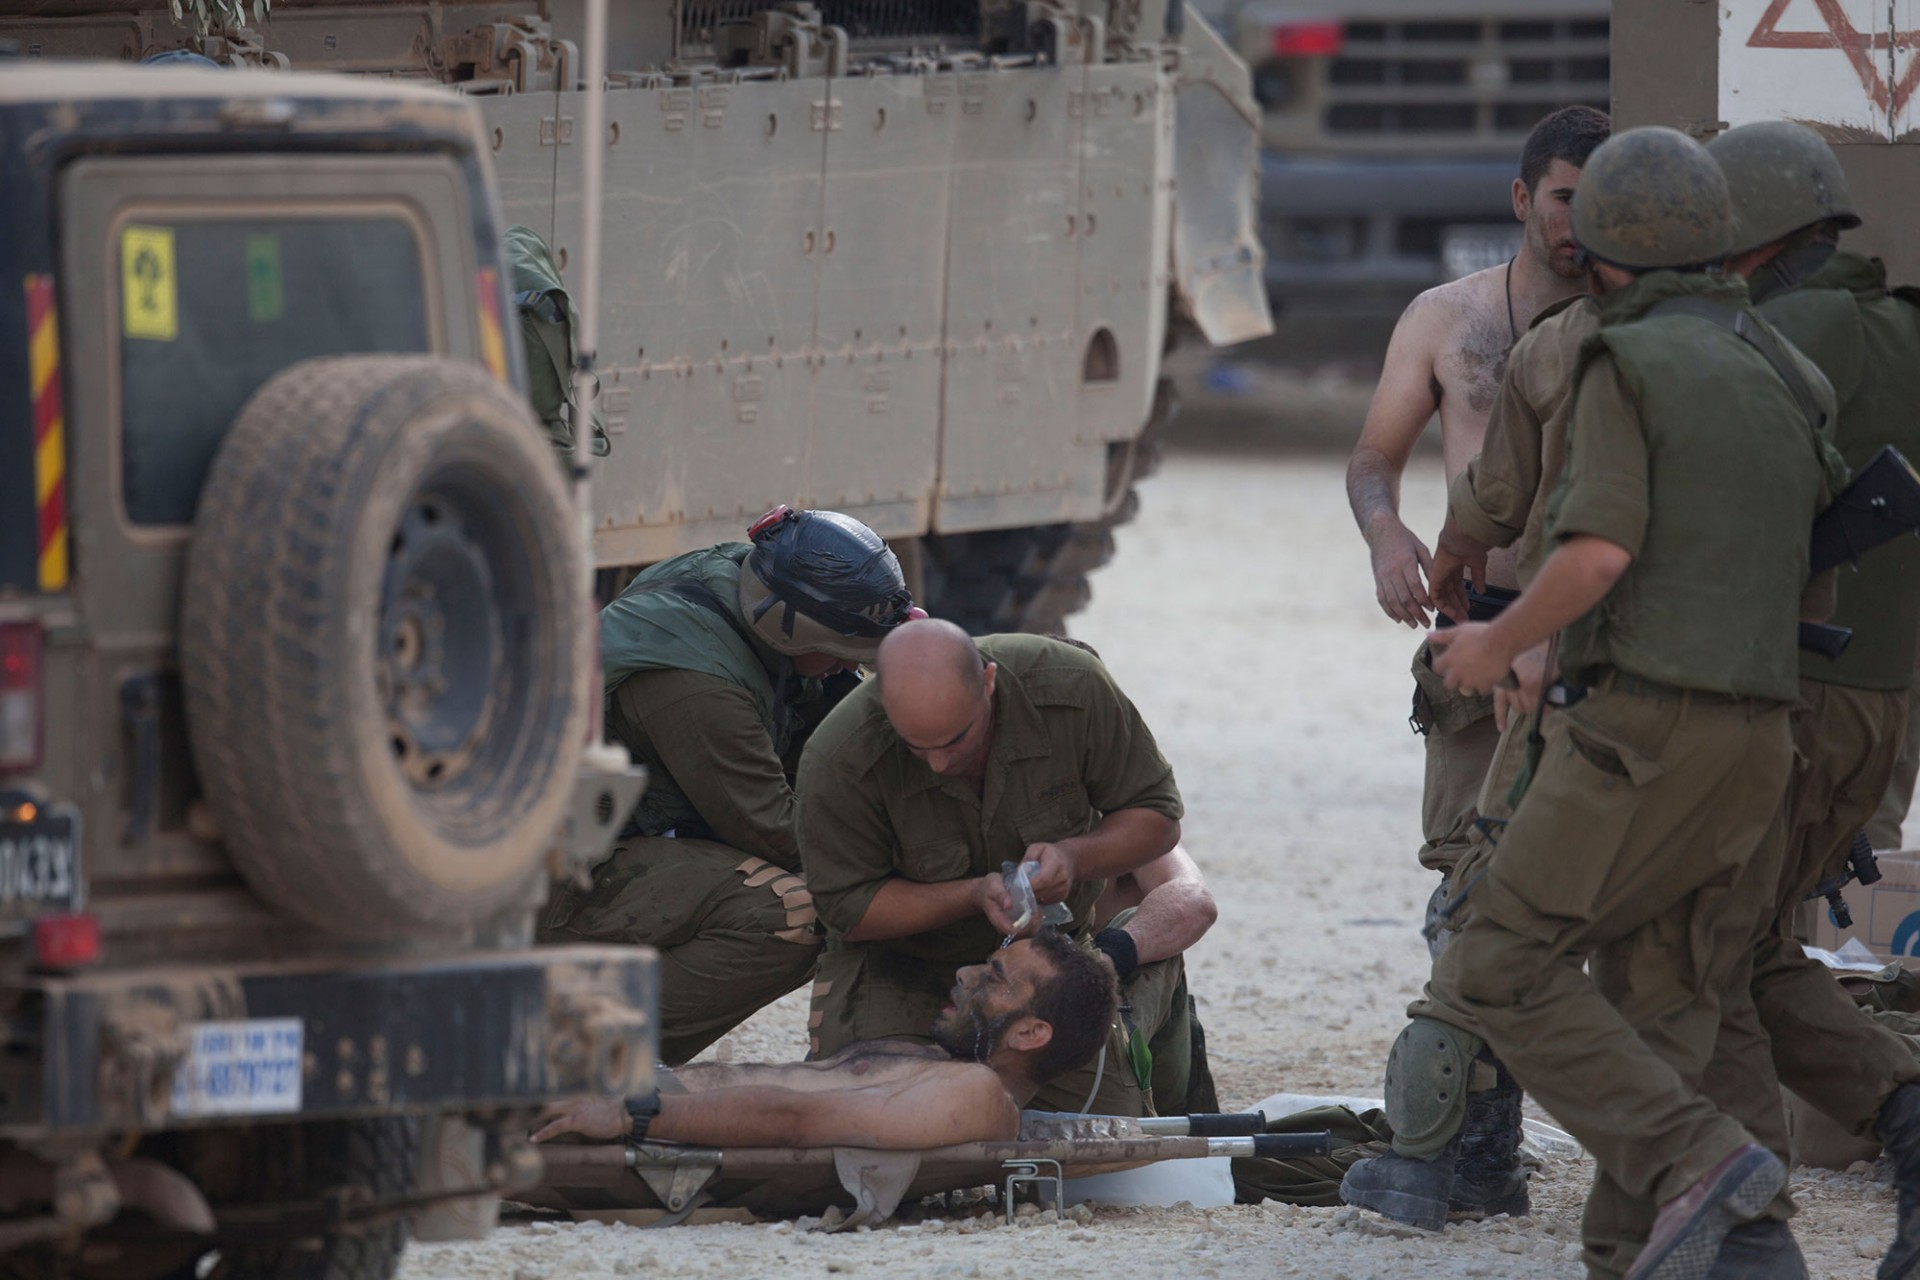 Israeli soldiers give medical care to soldiers who where wounded during an offensive in Gaza on July 20, 2014 at the Israeli-Gaza border.